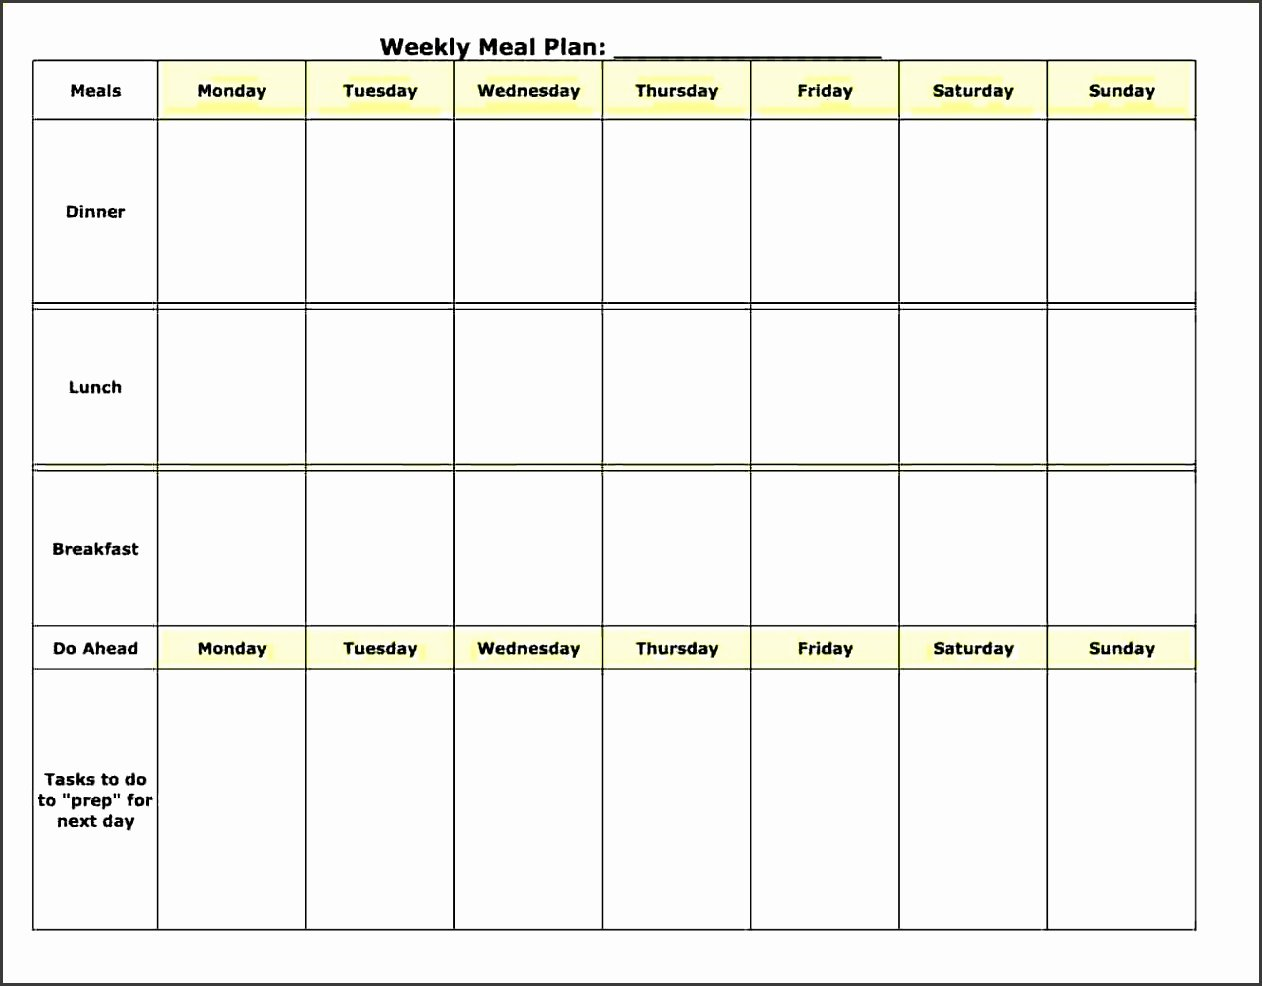 Daily Meal Plan Template Luxury 5 Daily Meal Planner Template Sampletemplatess